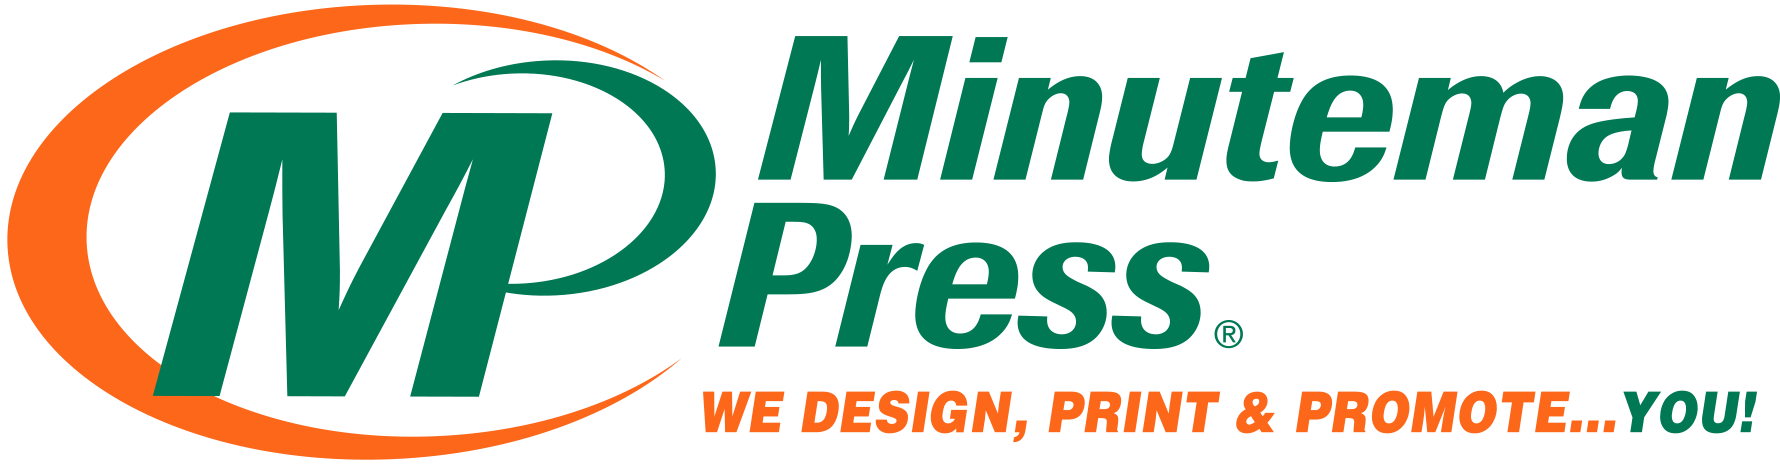 minuteman_press_logo.png